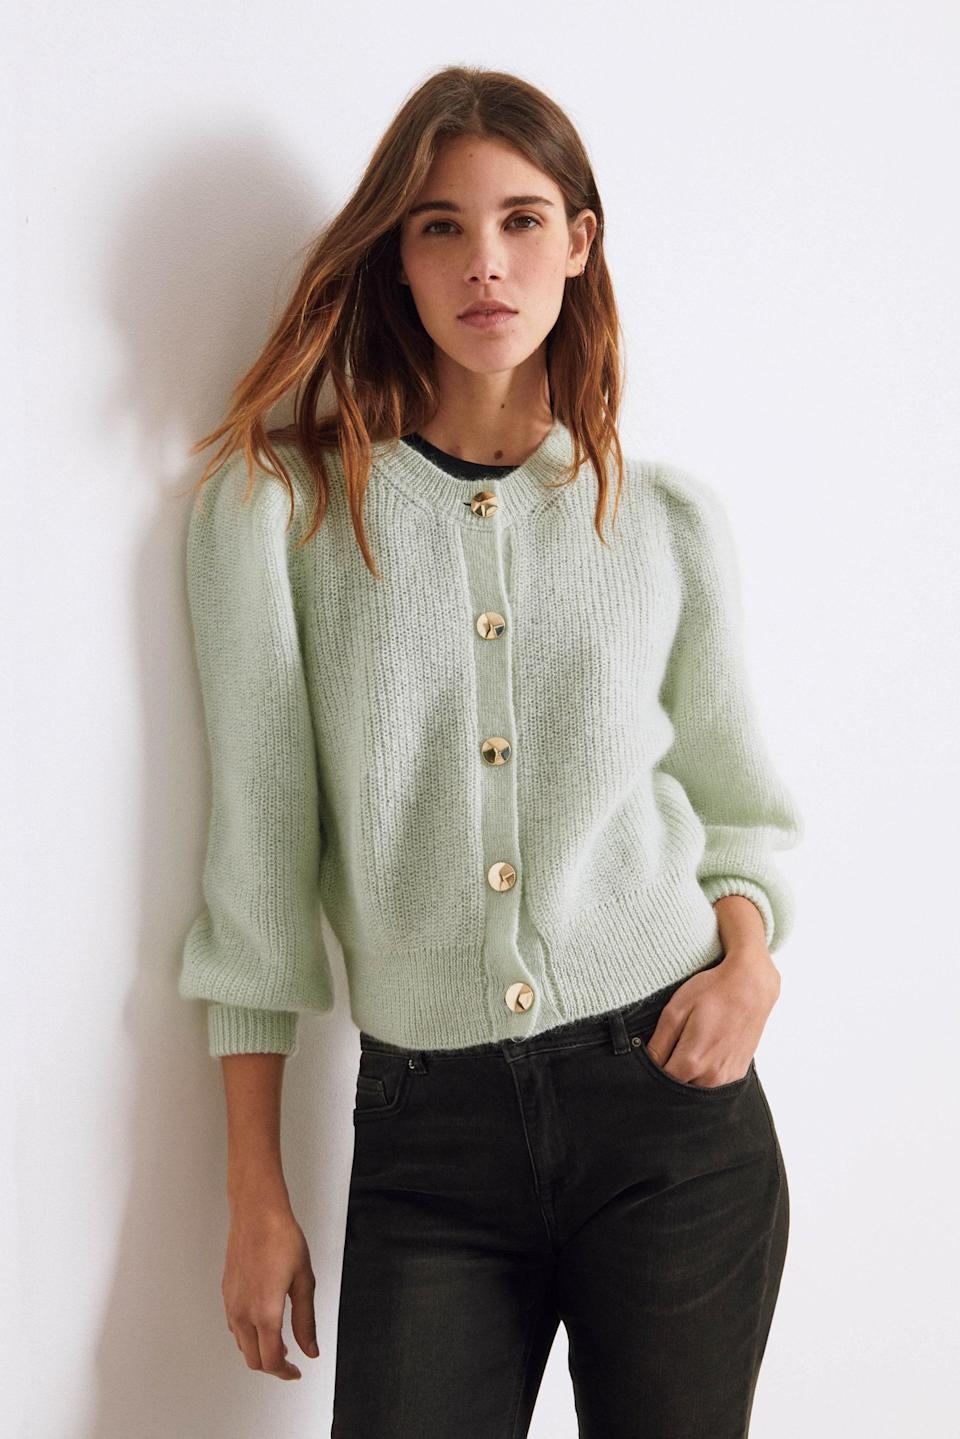 """More in the pistachio world: This wool- and mohair-blend cardigan could totally pass for a cropped jacket, thanks to the round neckline and puff sleeves that add instant structure. $295, Ba&sh. <a href=""""https://ba-sh.com/us/p/cardigan-baylor-vertdeau-3664784378815.html"""" rel=""""nofollow noopener"""" target=""""_blank"""" data-ylk=""""slk:Get it now!"""" class=""""link rapid-noclick-resp"""">Get it now!</a>"""